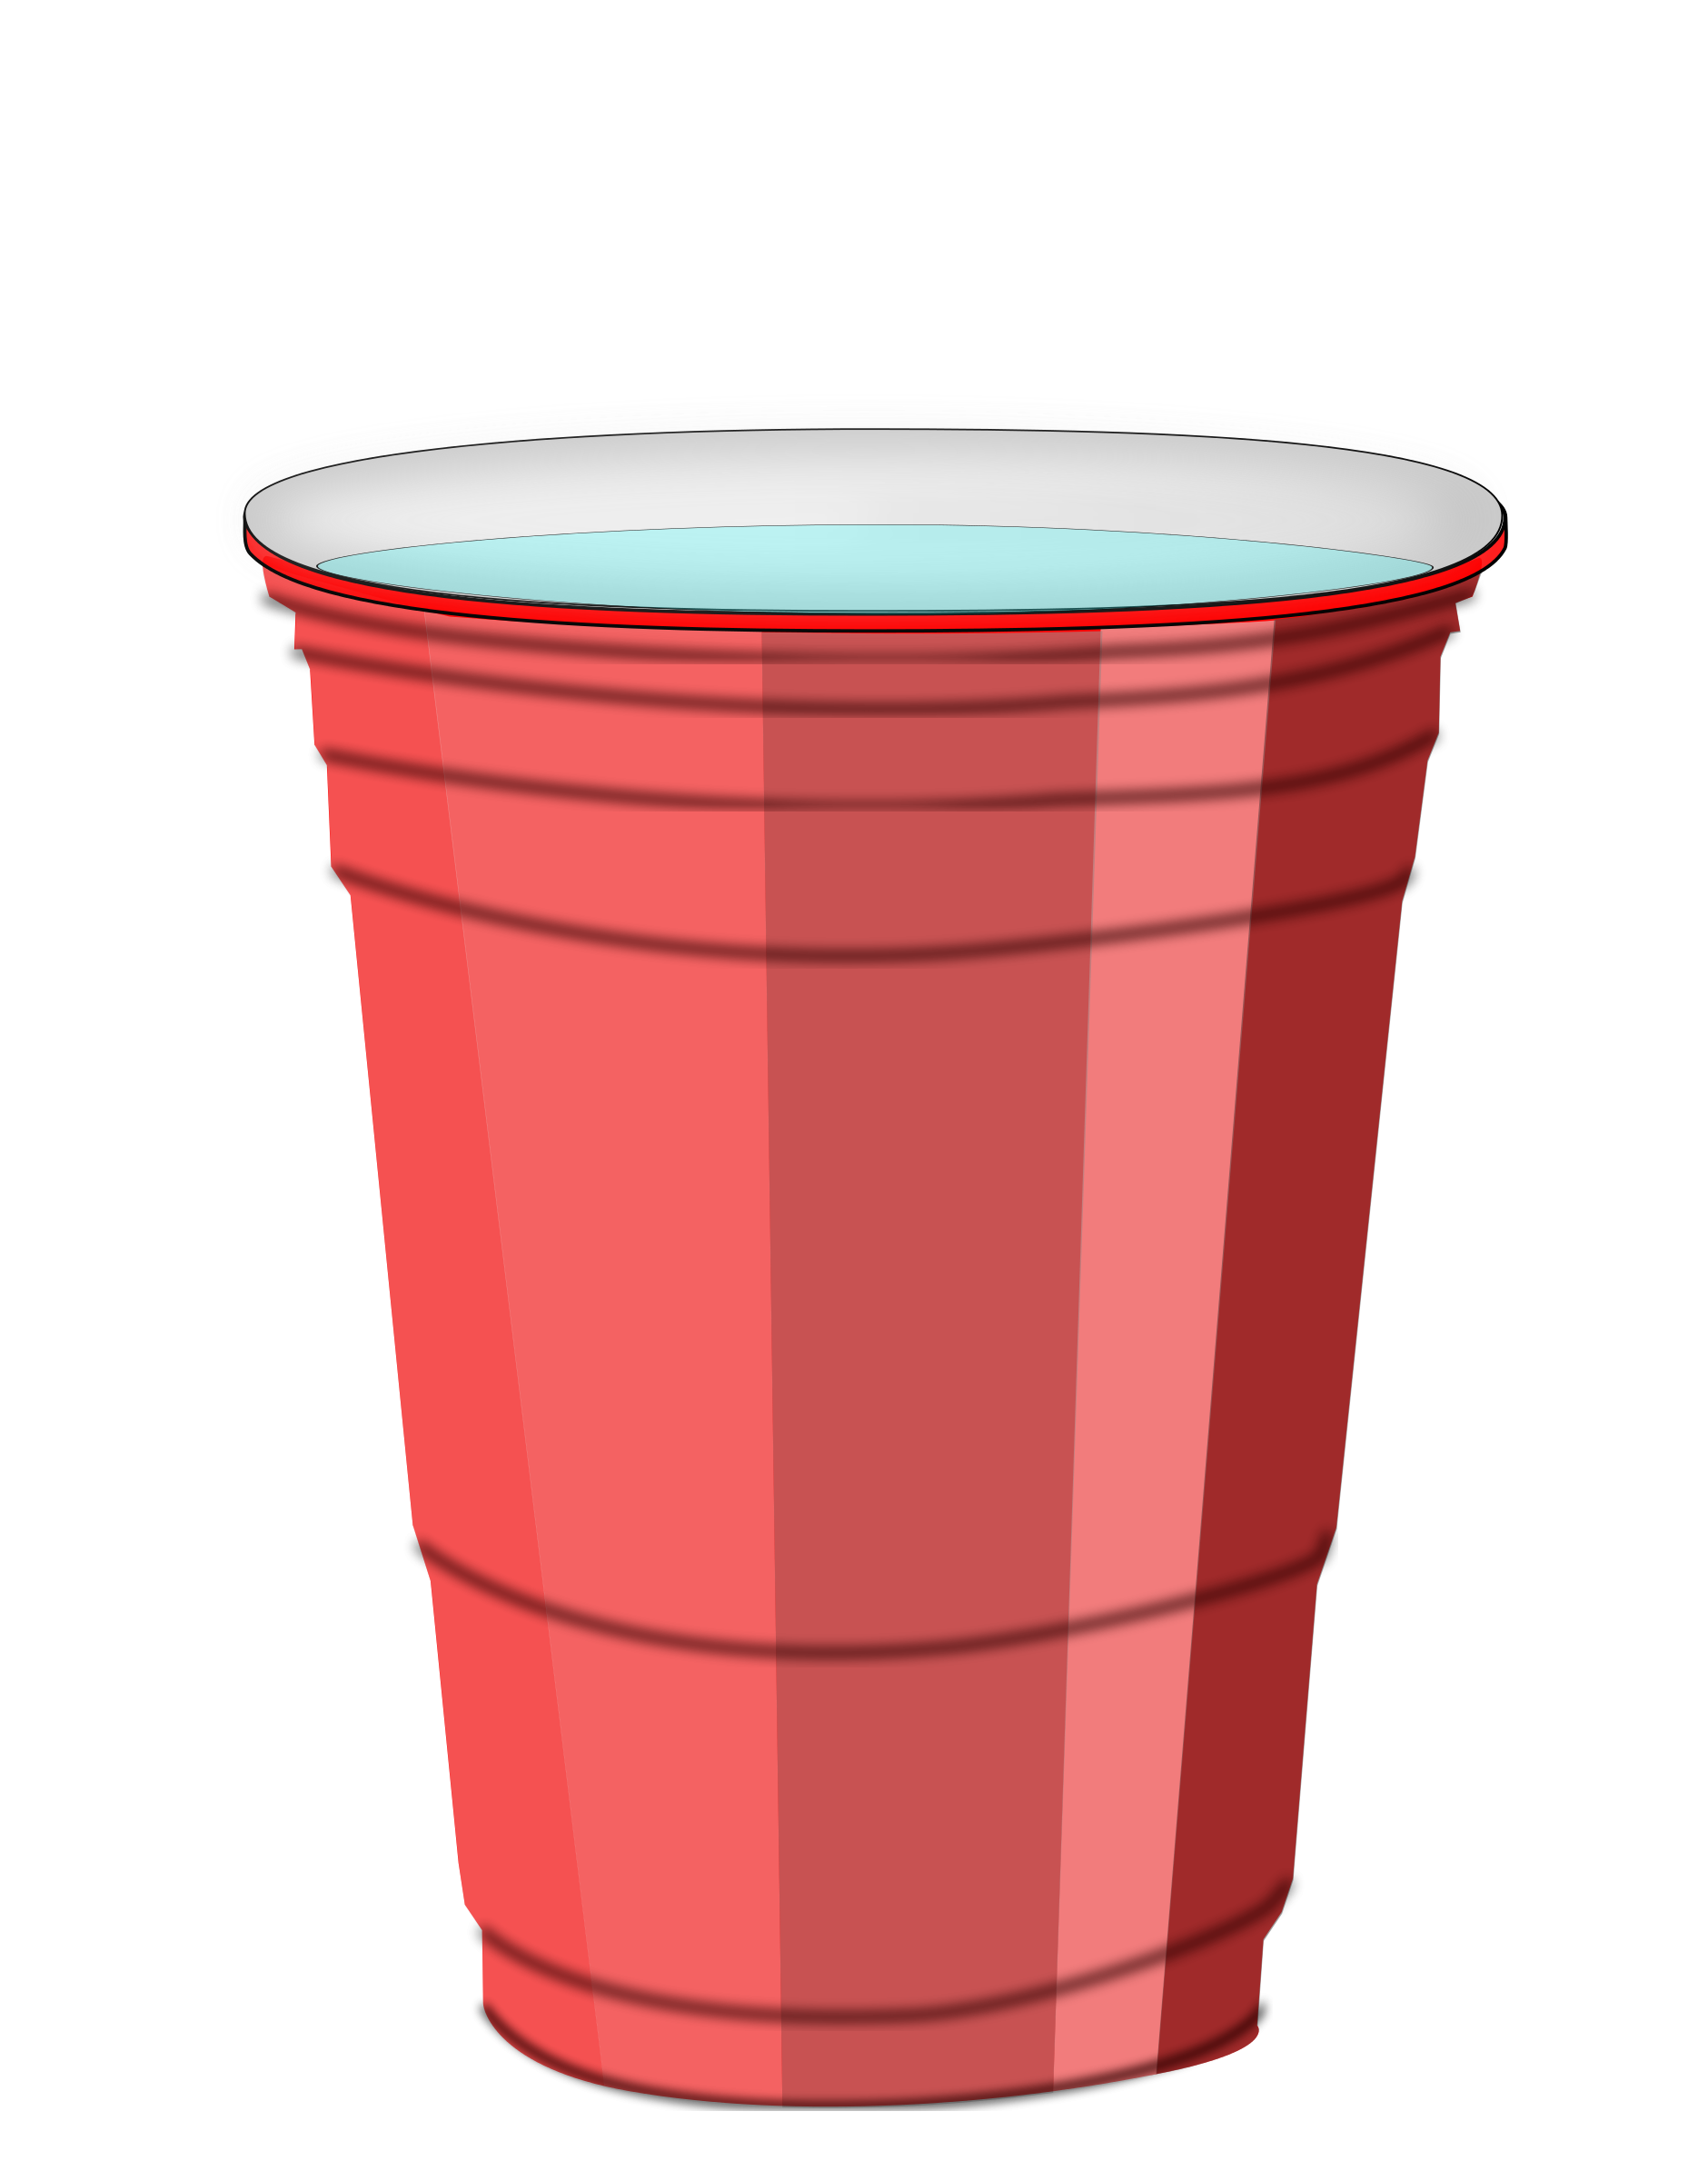 Clear Plastic Cup Clipart   Clipart Panda   Free Clipart Images